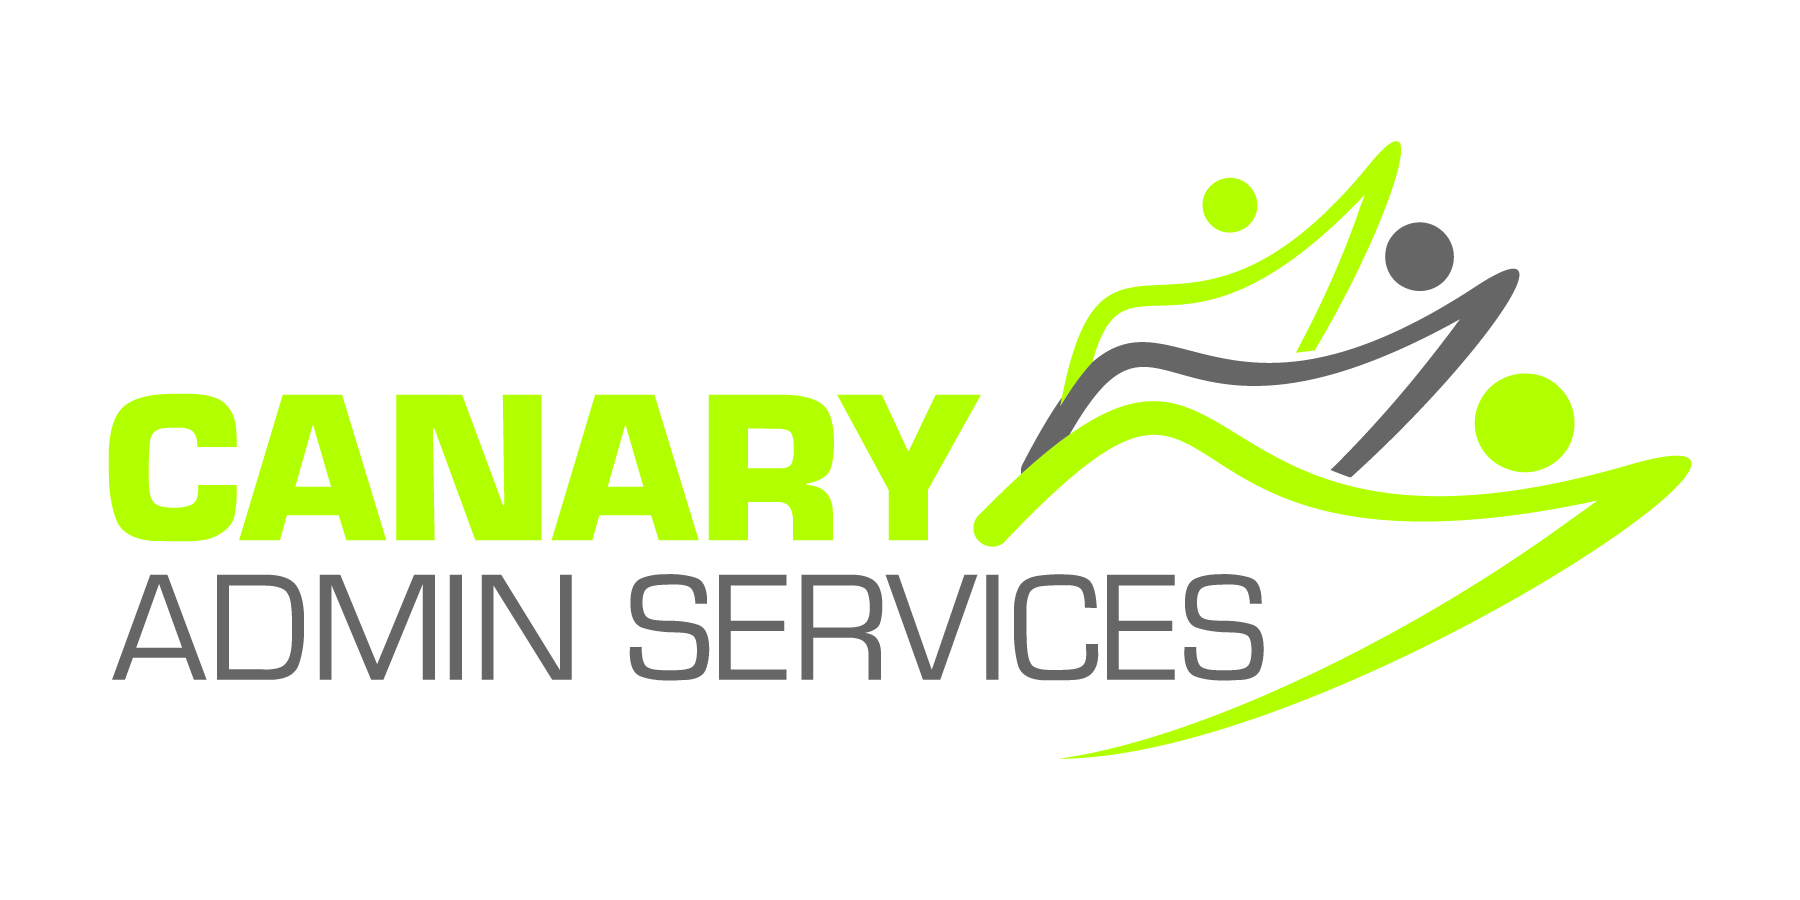 Canary Admin Services